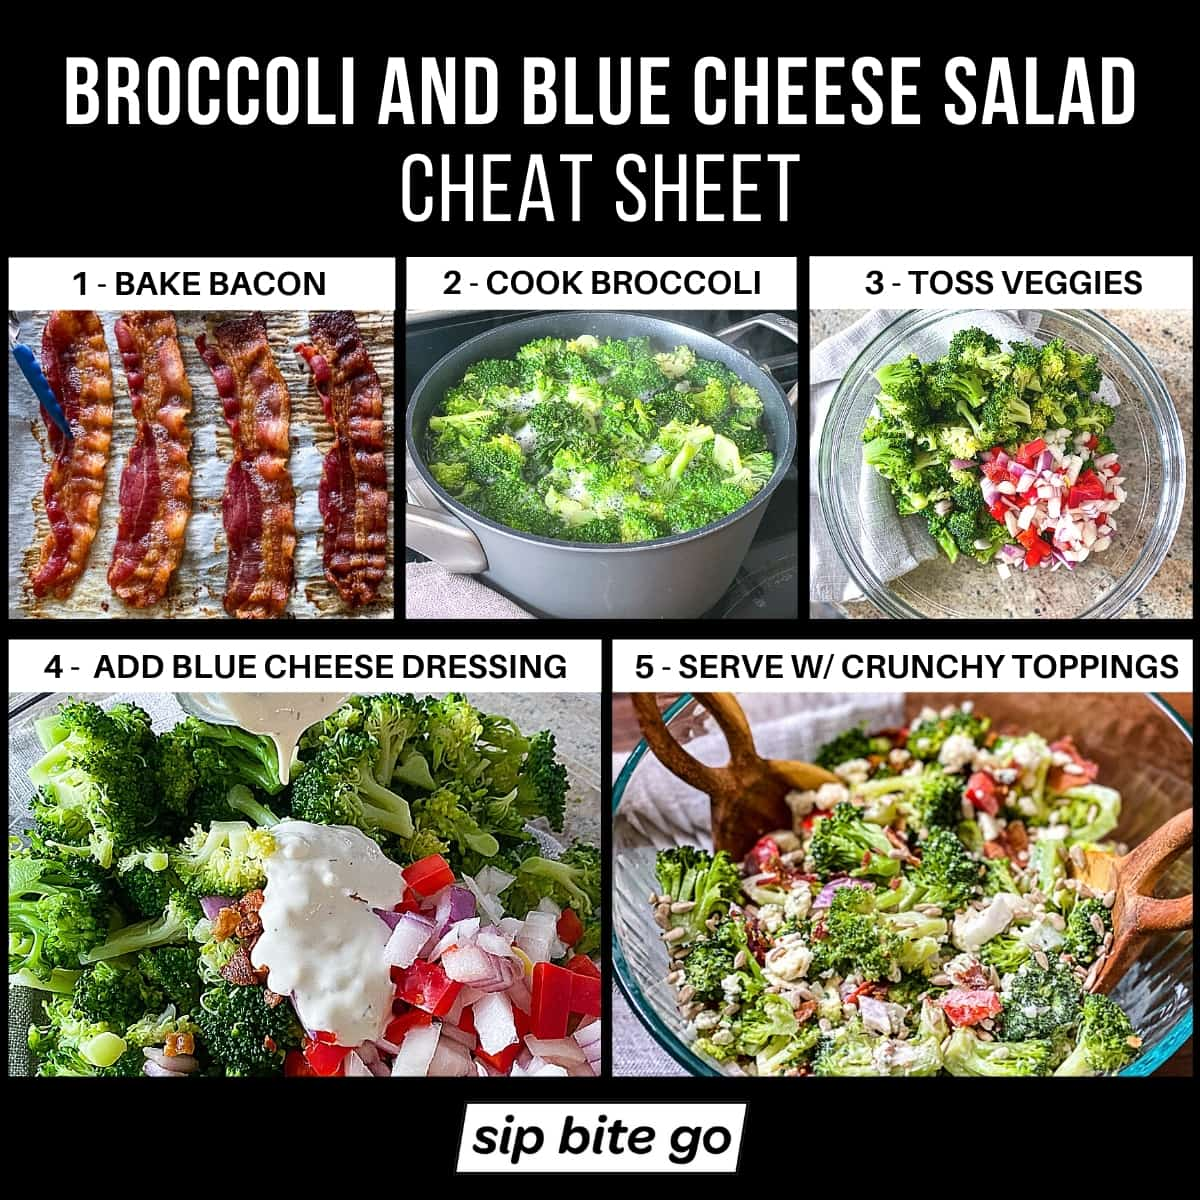 Broccoli And Blue Cheese Salad Recipe Steps Infographic chart with captions